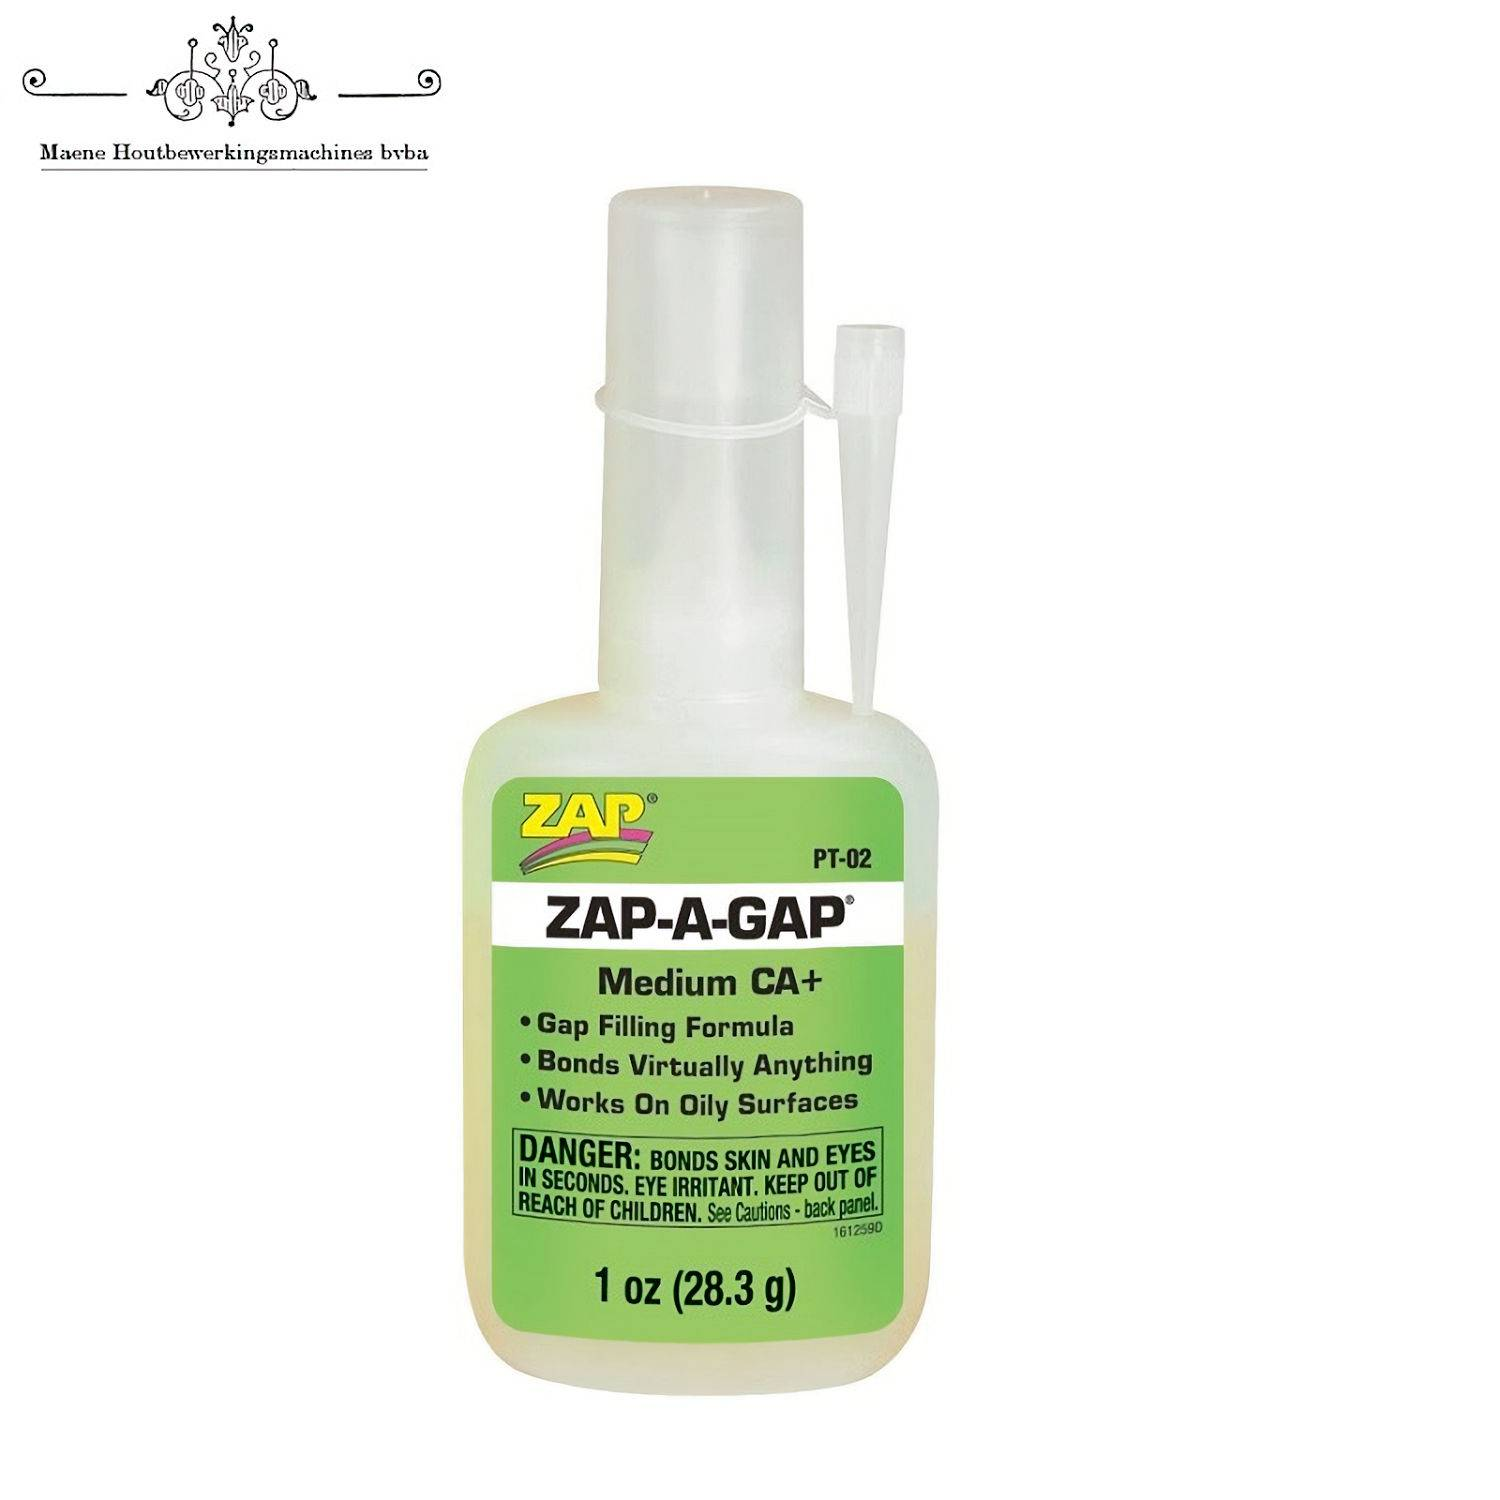 zap-a-gap-medium-CA-28gr